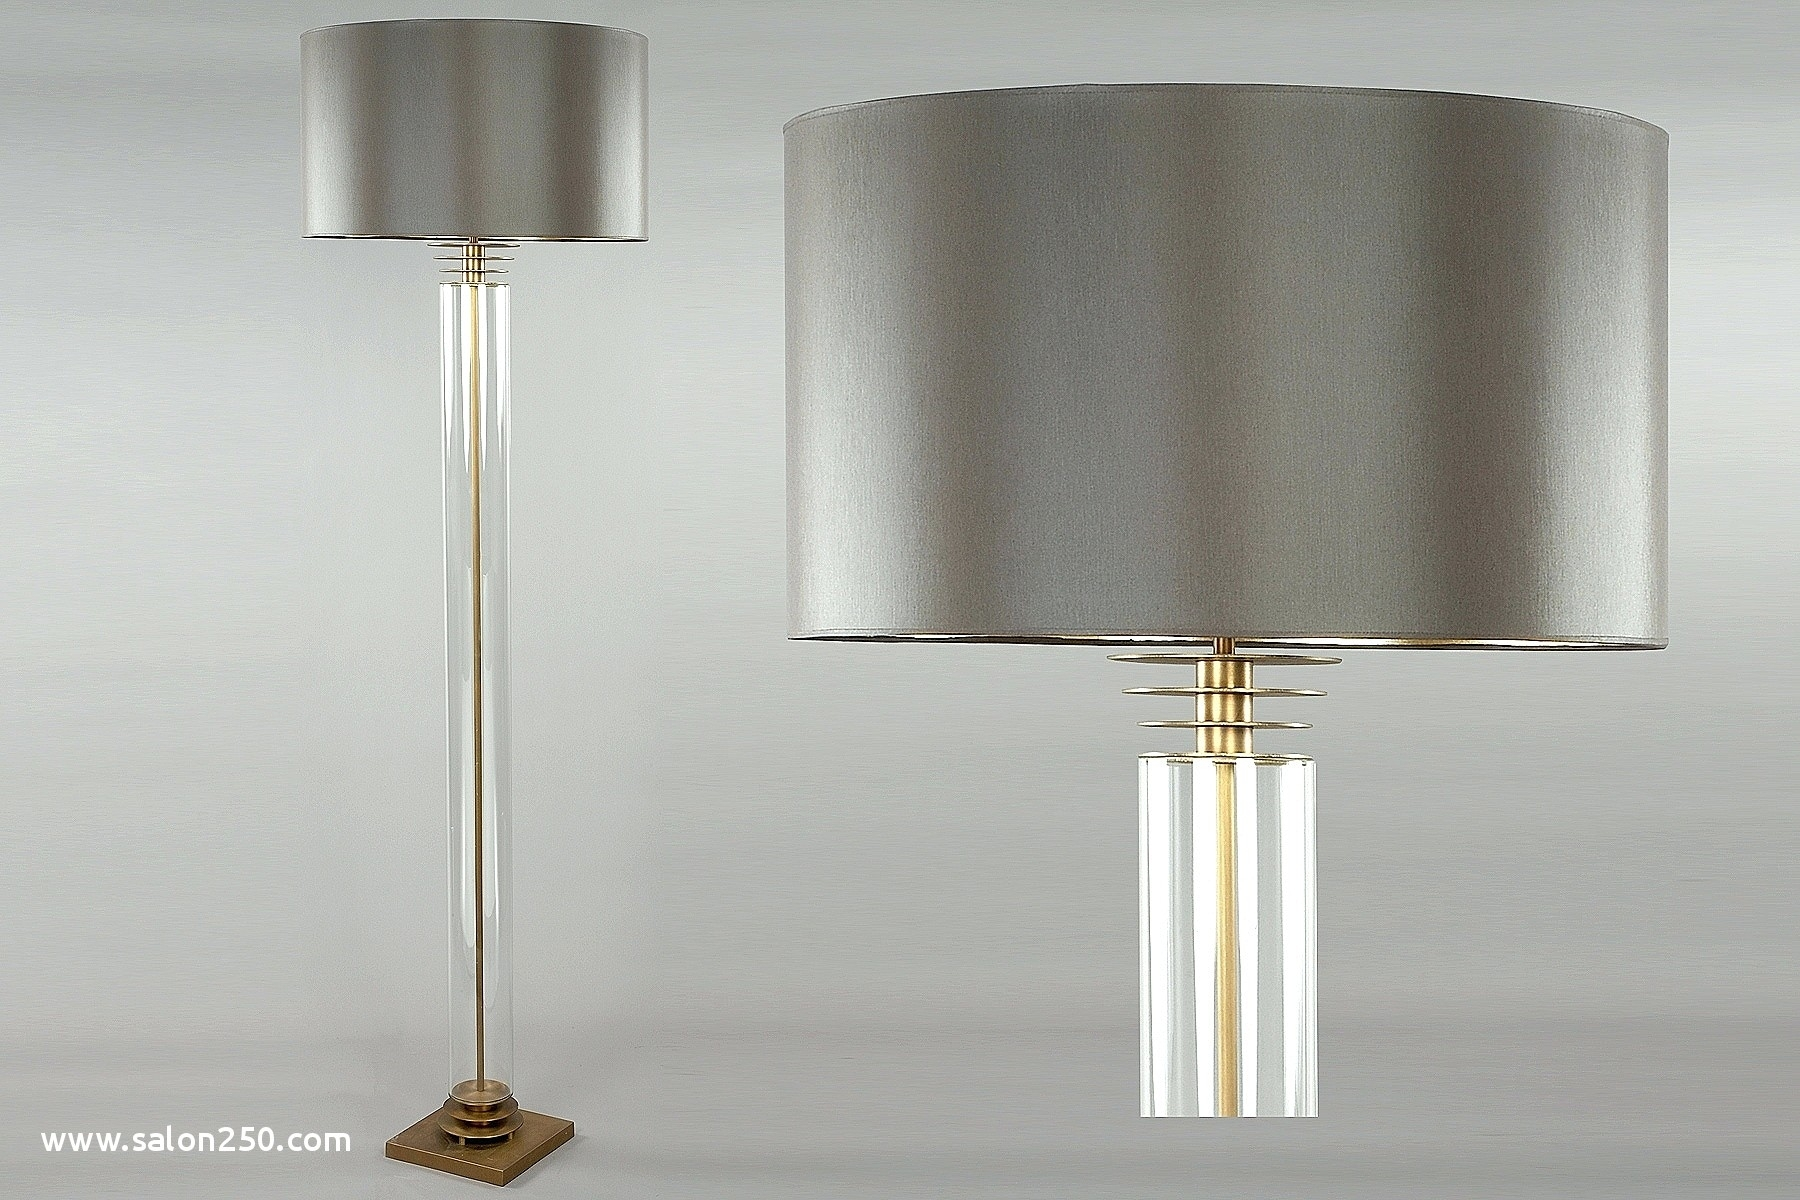 Inspiration about Light : Floor Lamp Shade Replacement Luxury Lamps Glass Reflector Regarding Living Room Table Reading Lamps (#10 of 15)